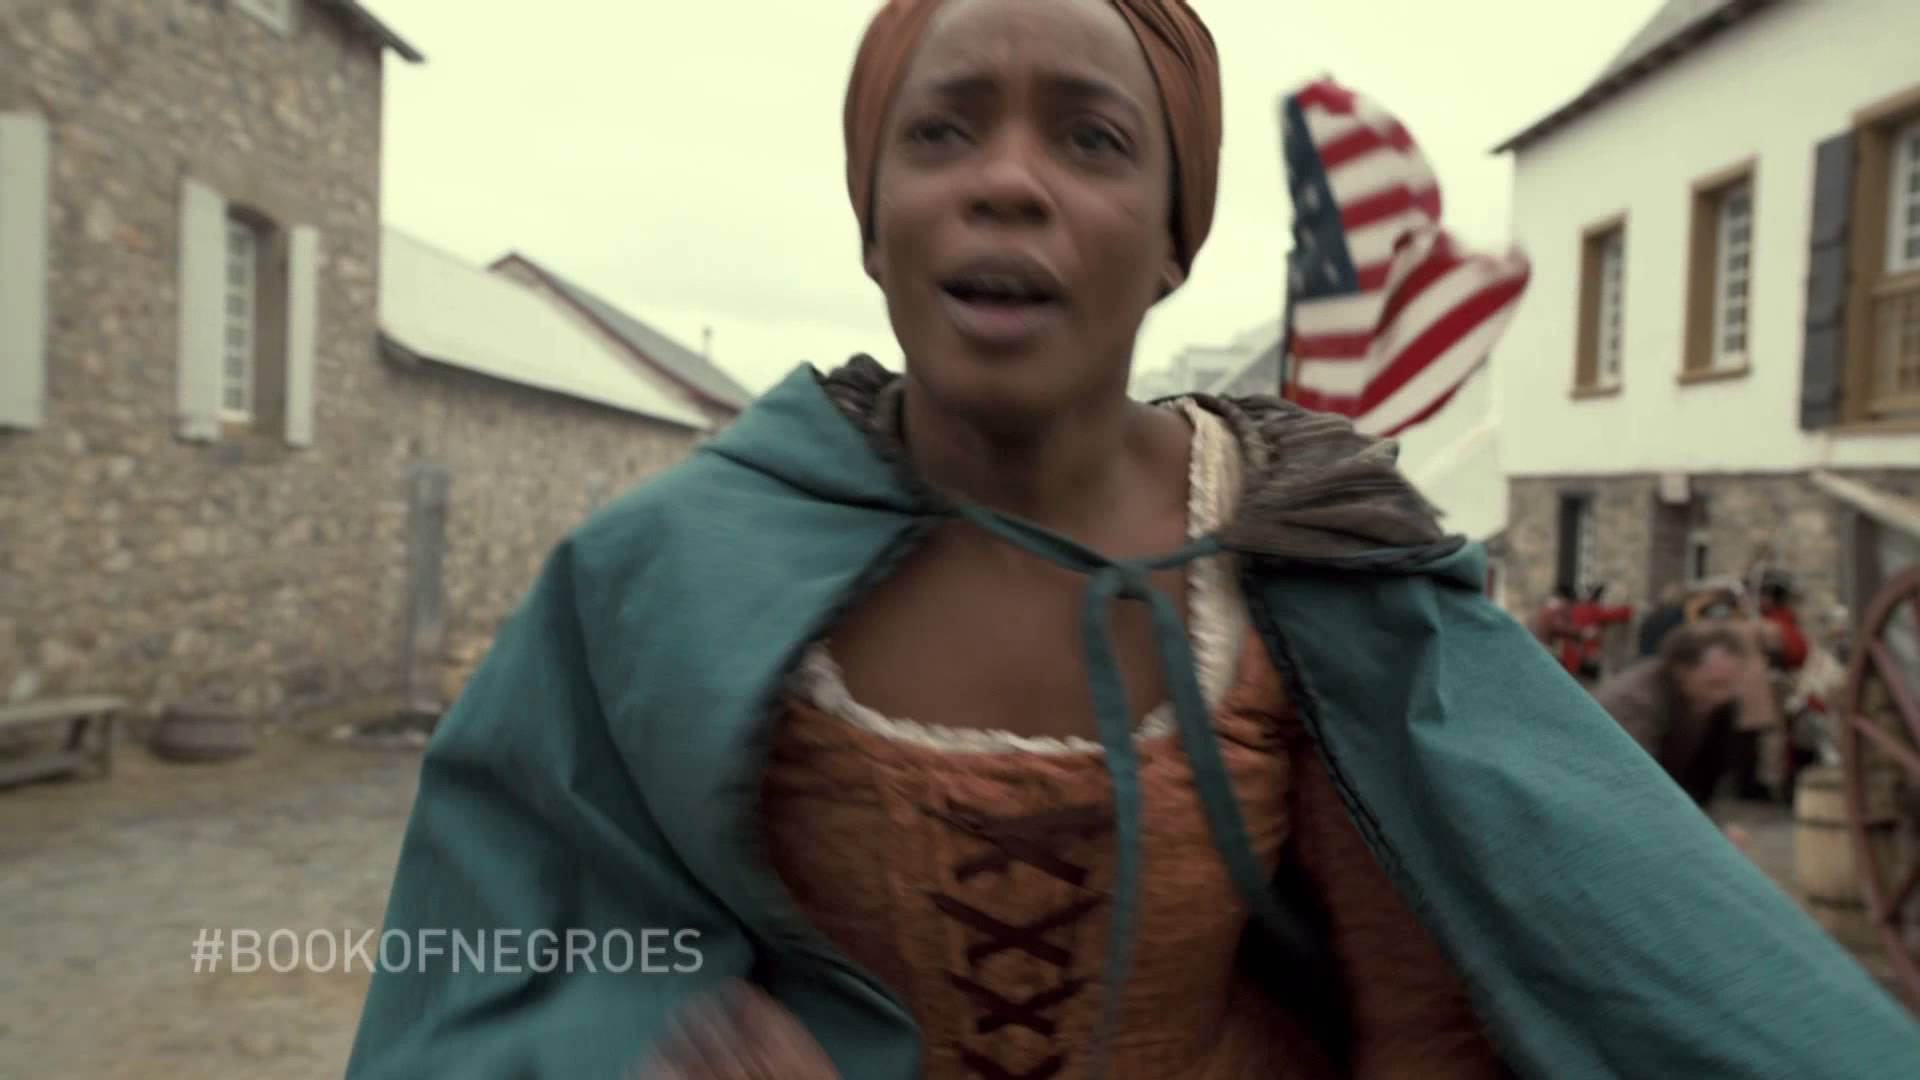 The Book of Negroes' Miniseries, Which Premieres 16 Feb 2015 on BET